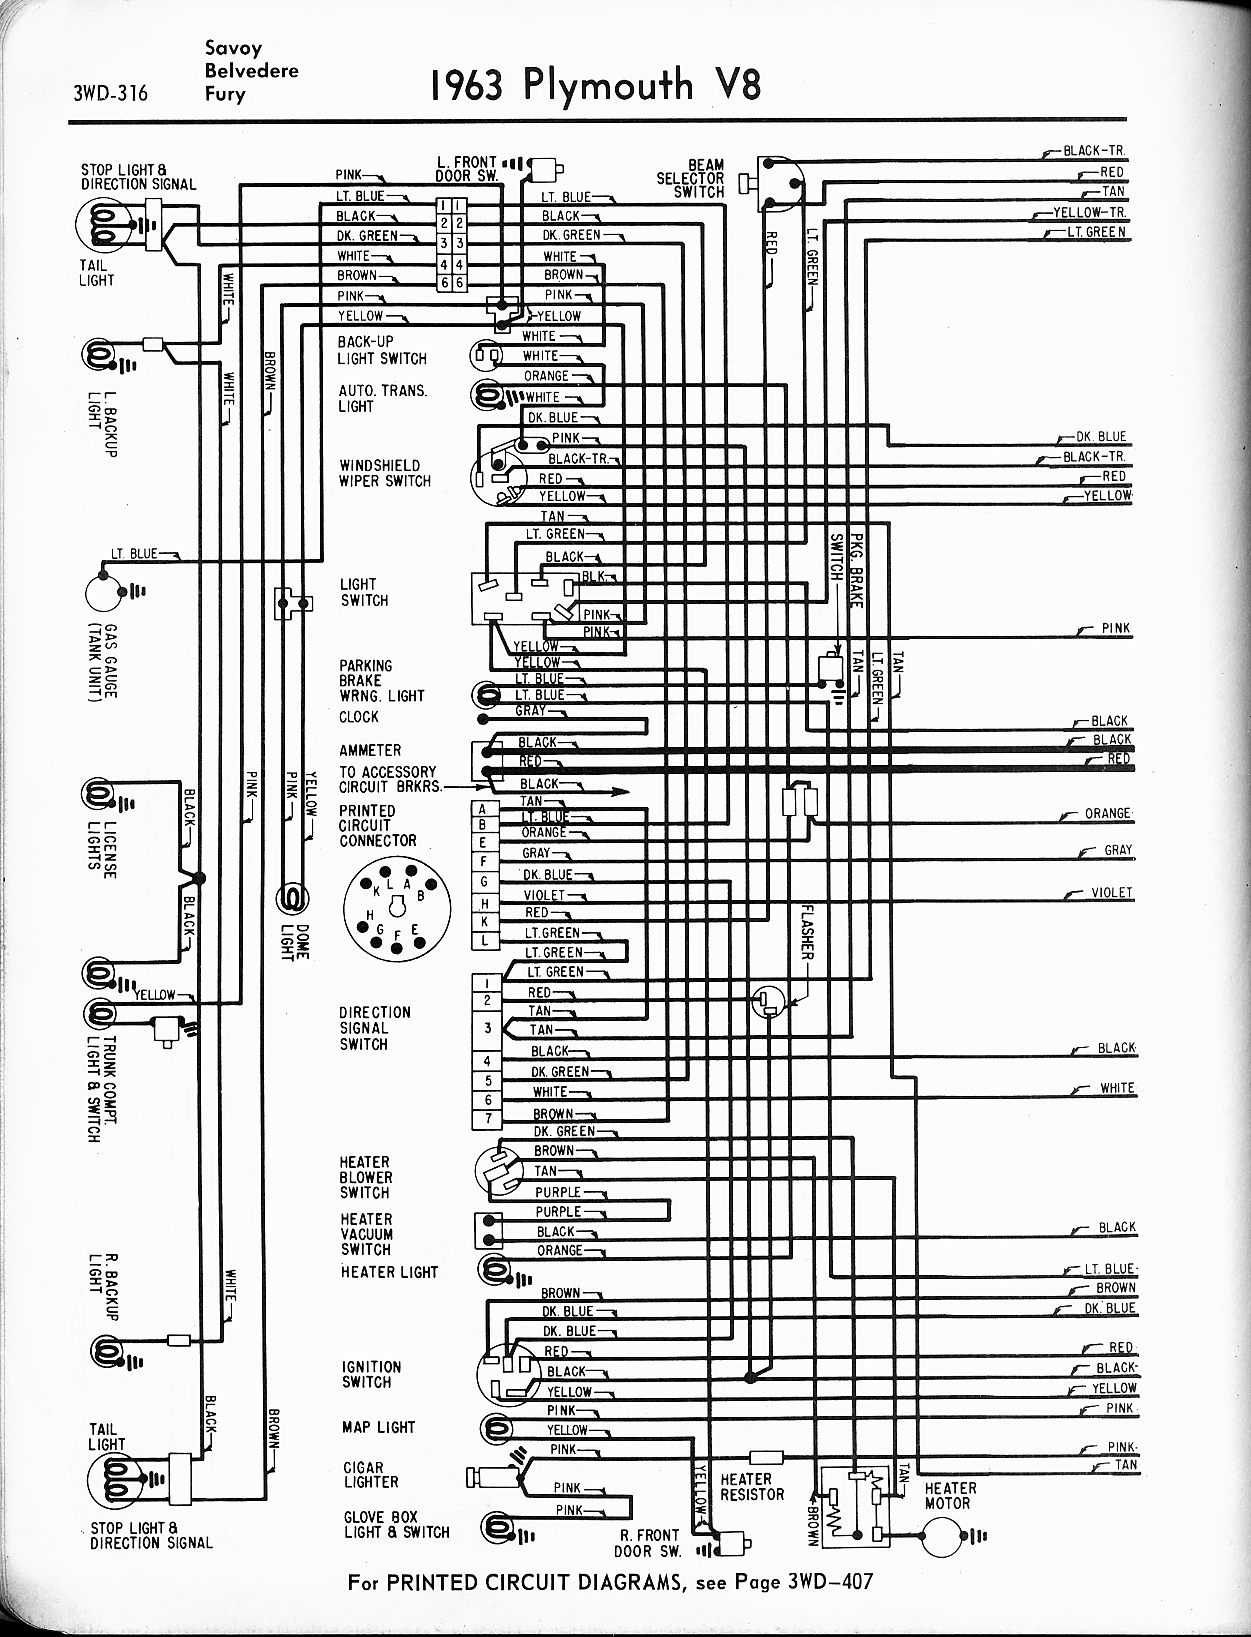 MWire5765 316 1956 1965 plymouth wiring the old car manual project 316 john deere wiring diagram at n-0.co